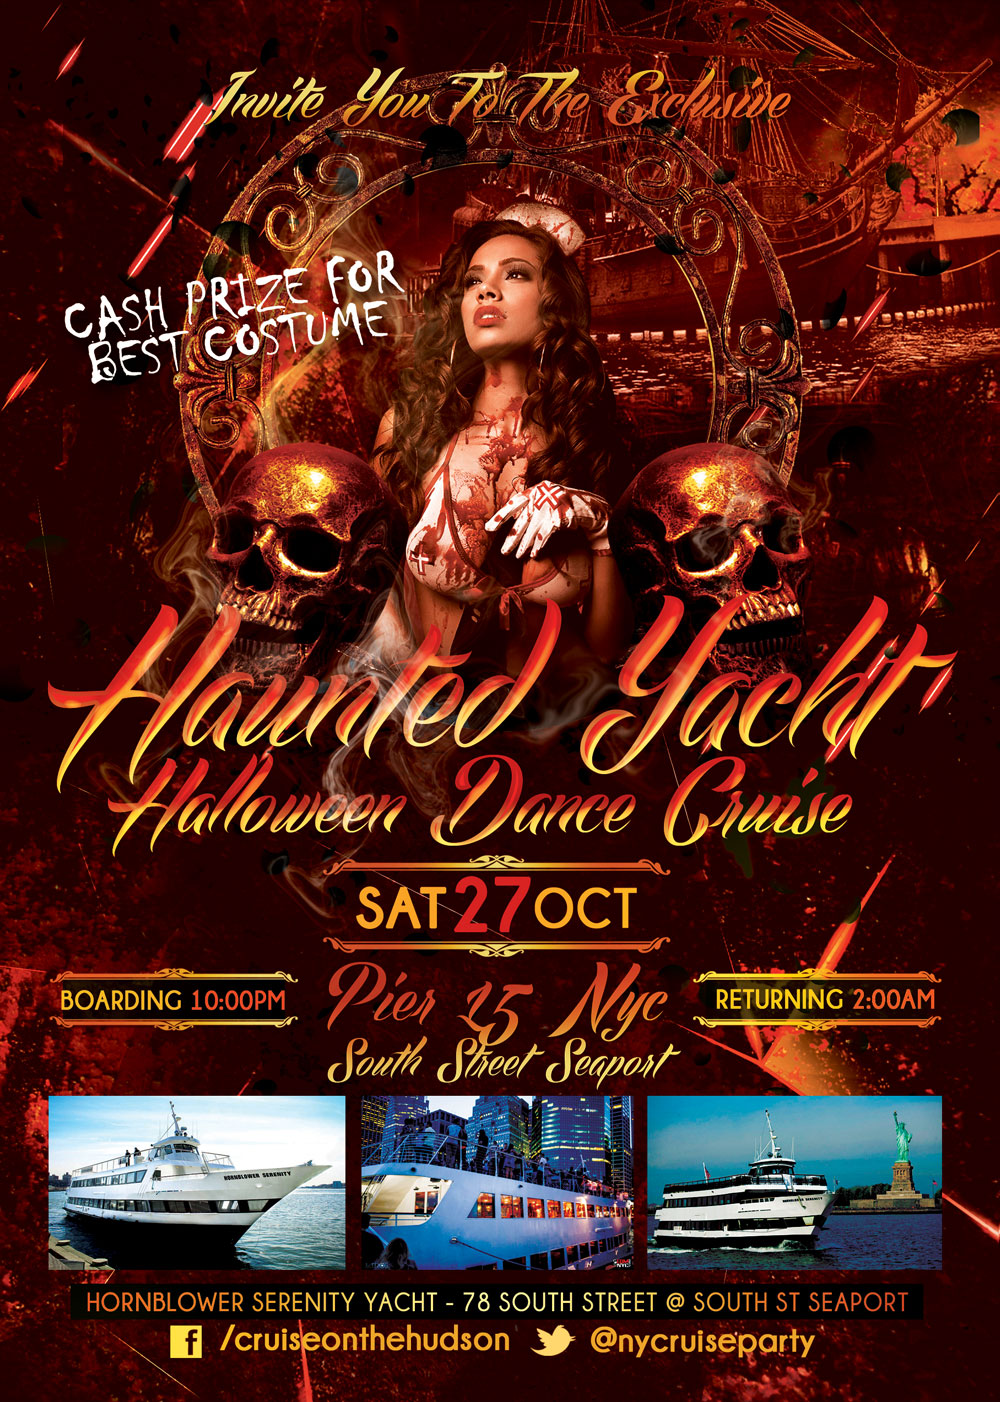 Haunted Yacht Halloween Dance Cruise NYC Pier 15 South Street Seaport